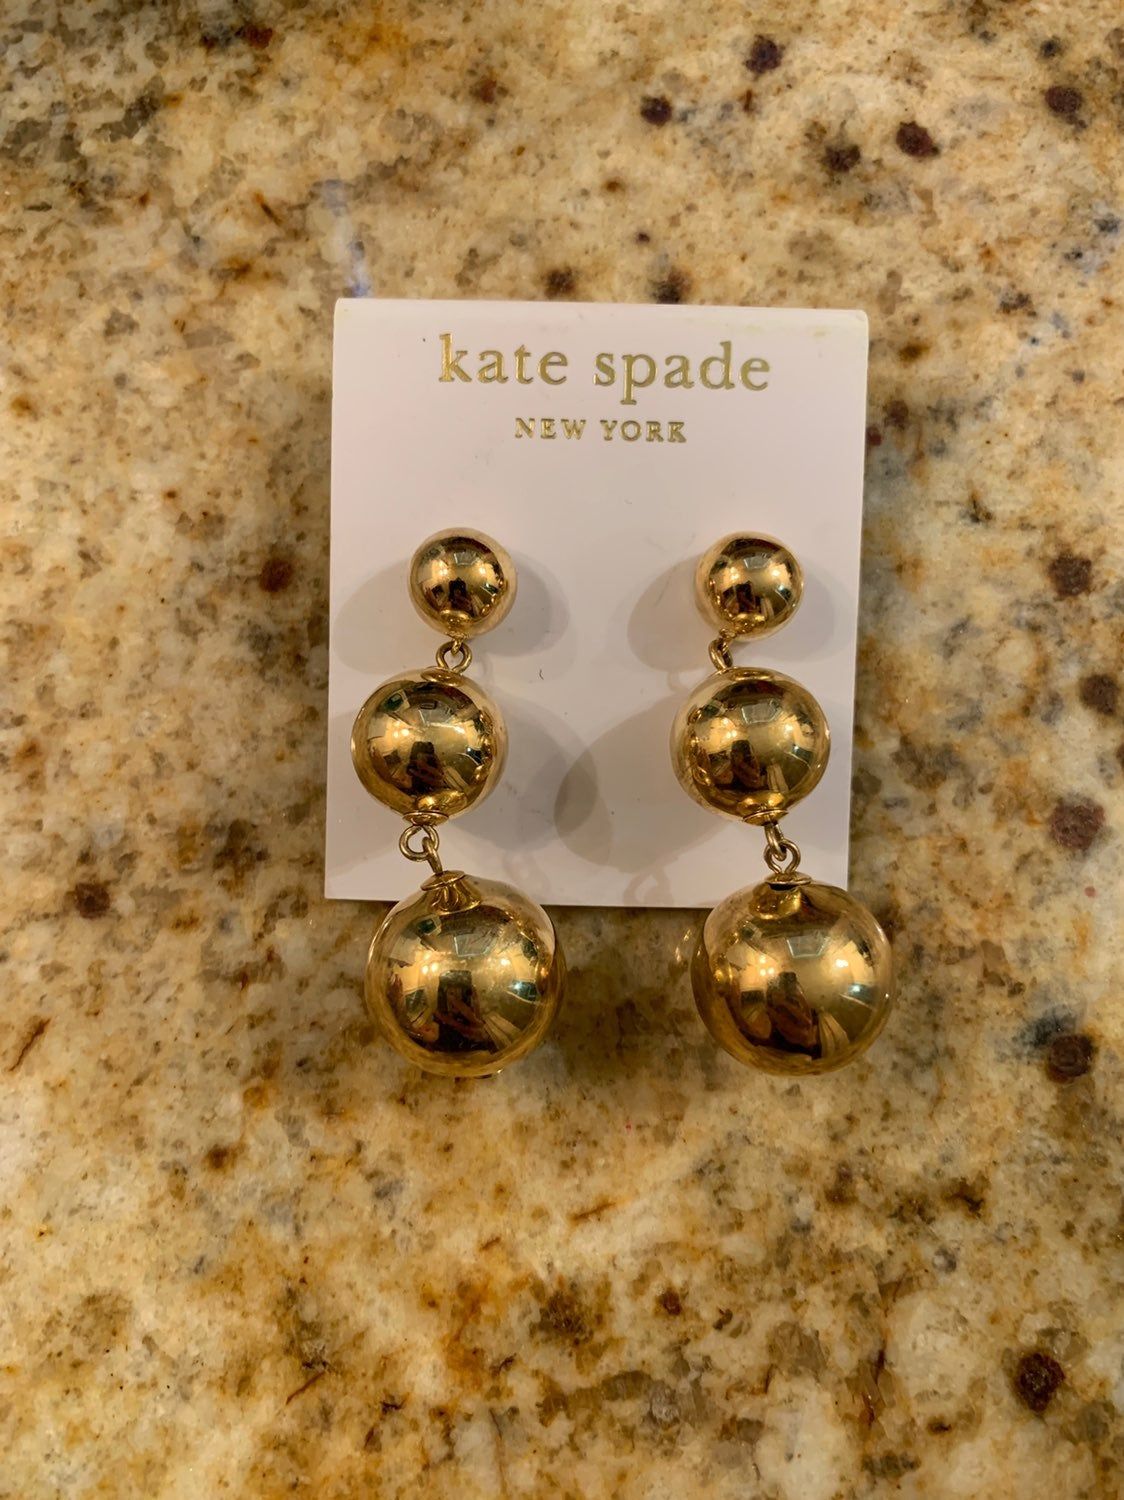 Kate spade gold three ball drop earrings